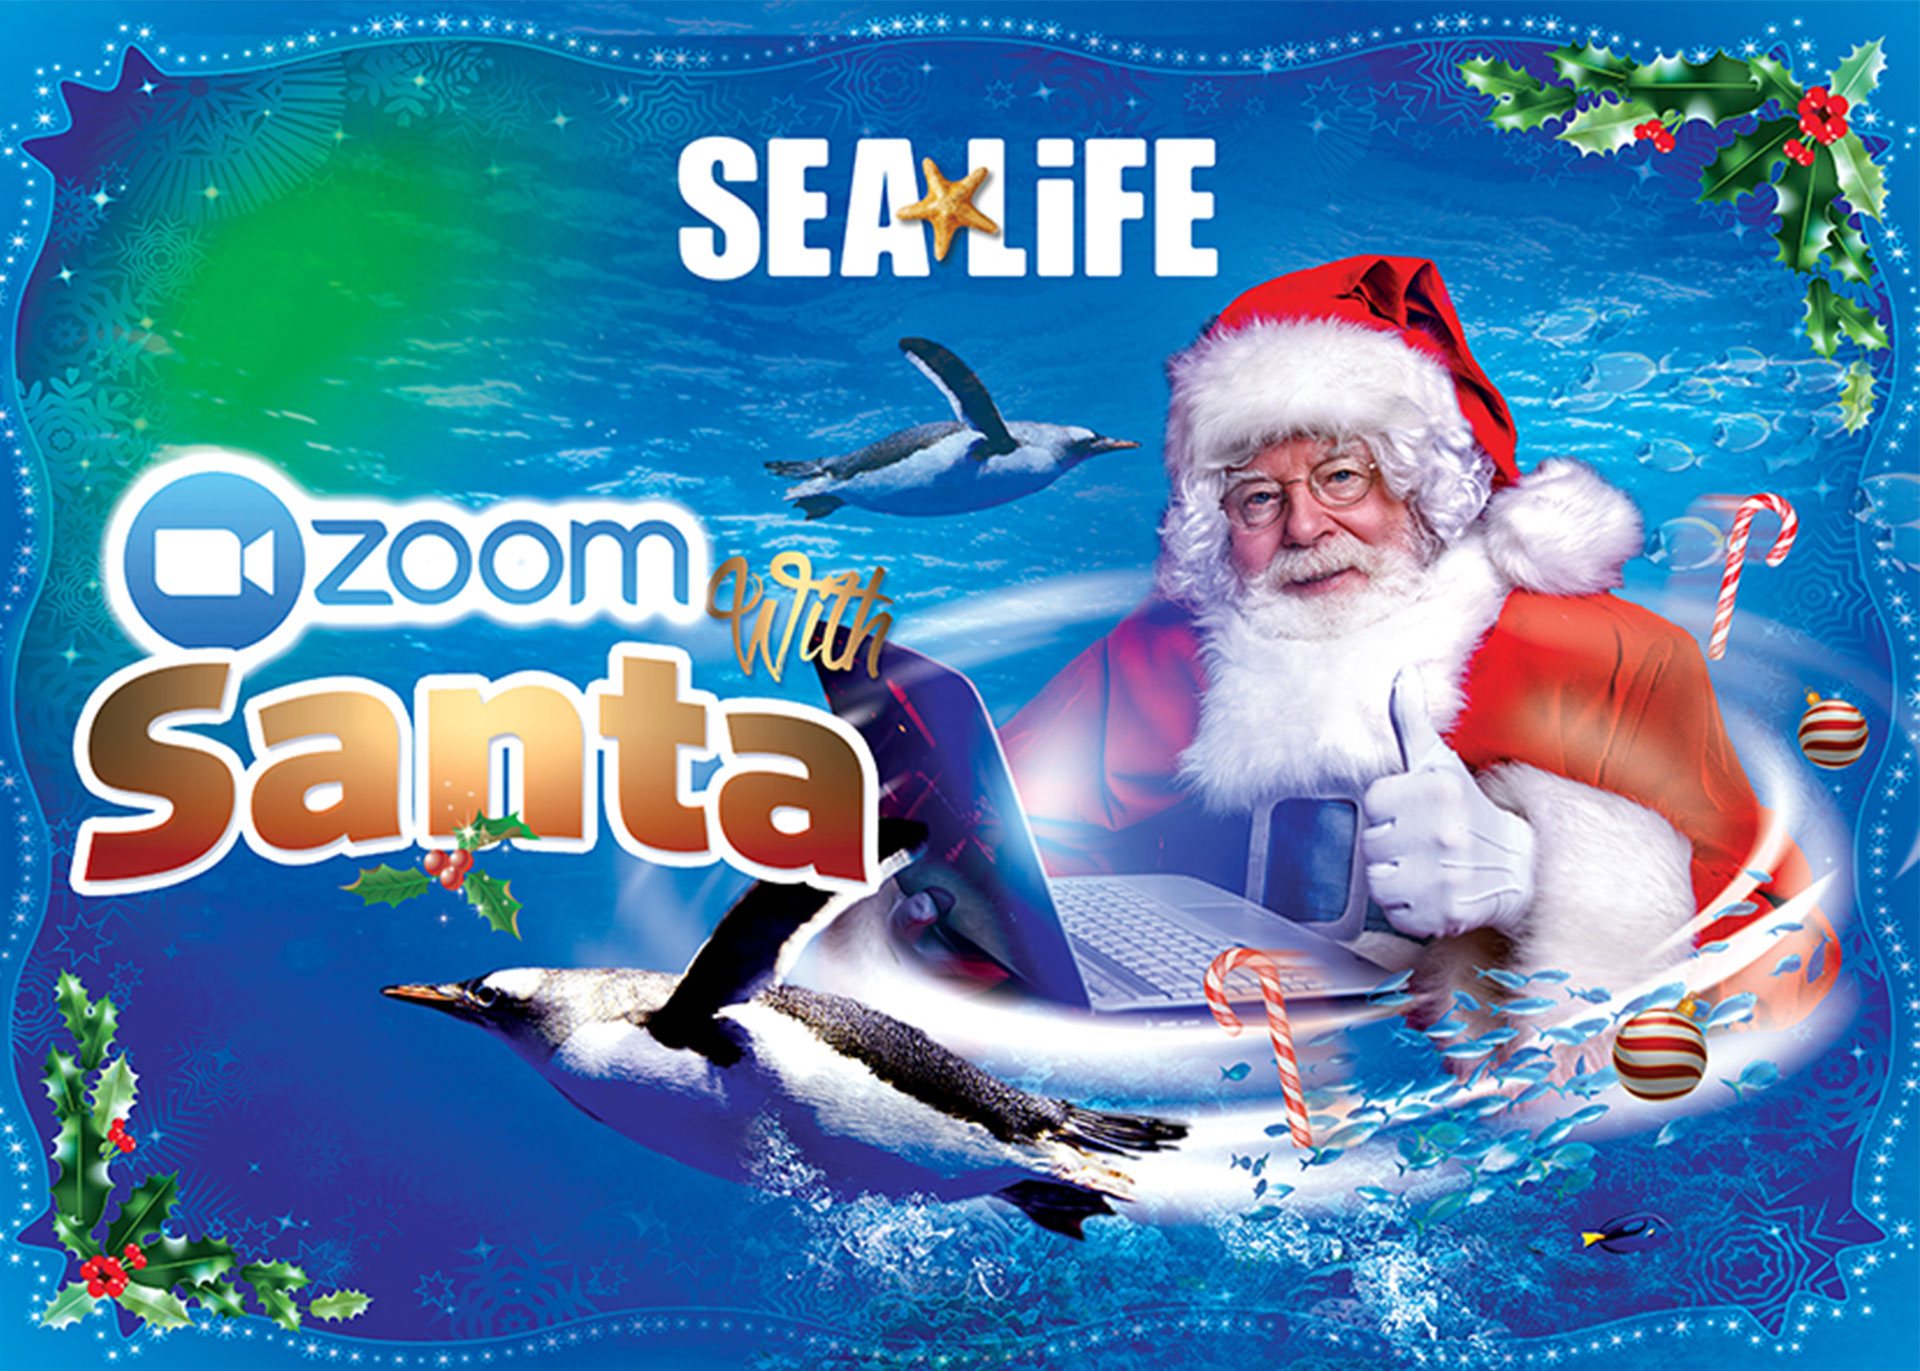 Zoom with Santa this Christmas at SEA LIFE